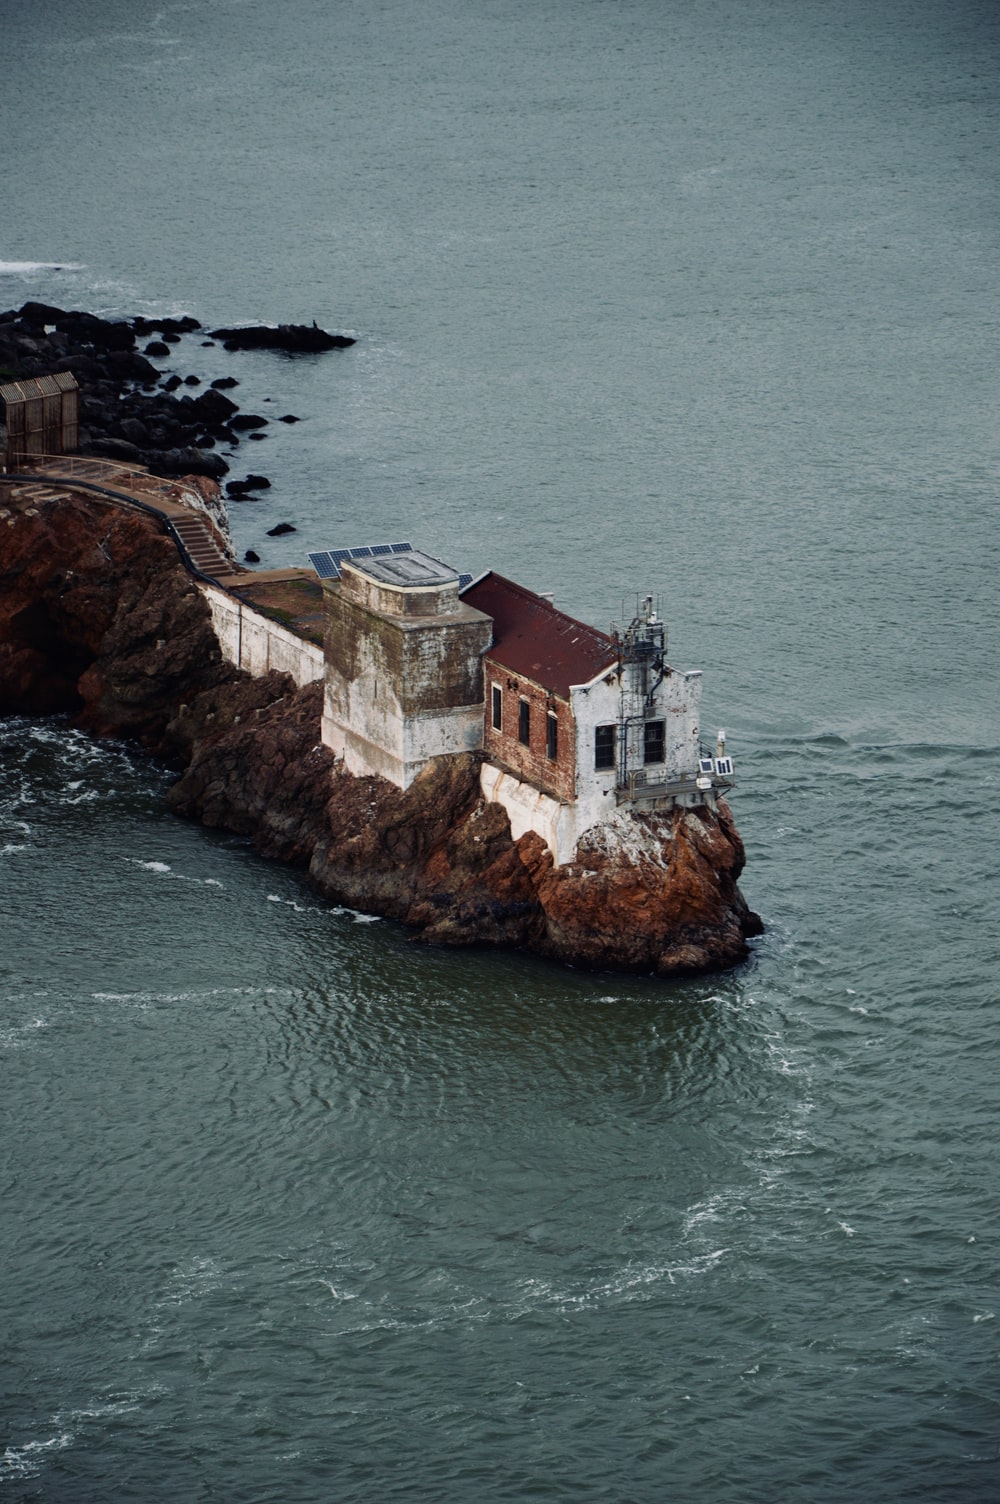 bird's eye photography of white and red concrete house on cliff near body of water